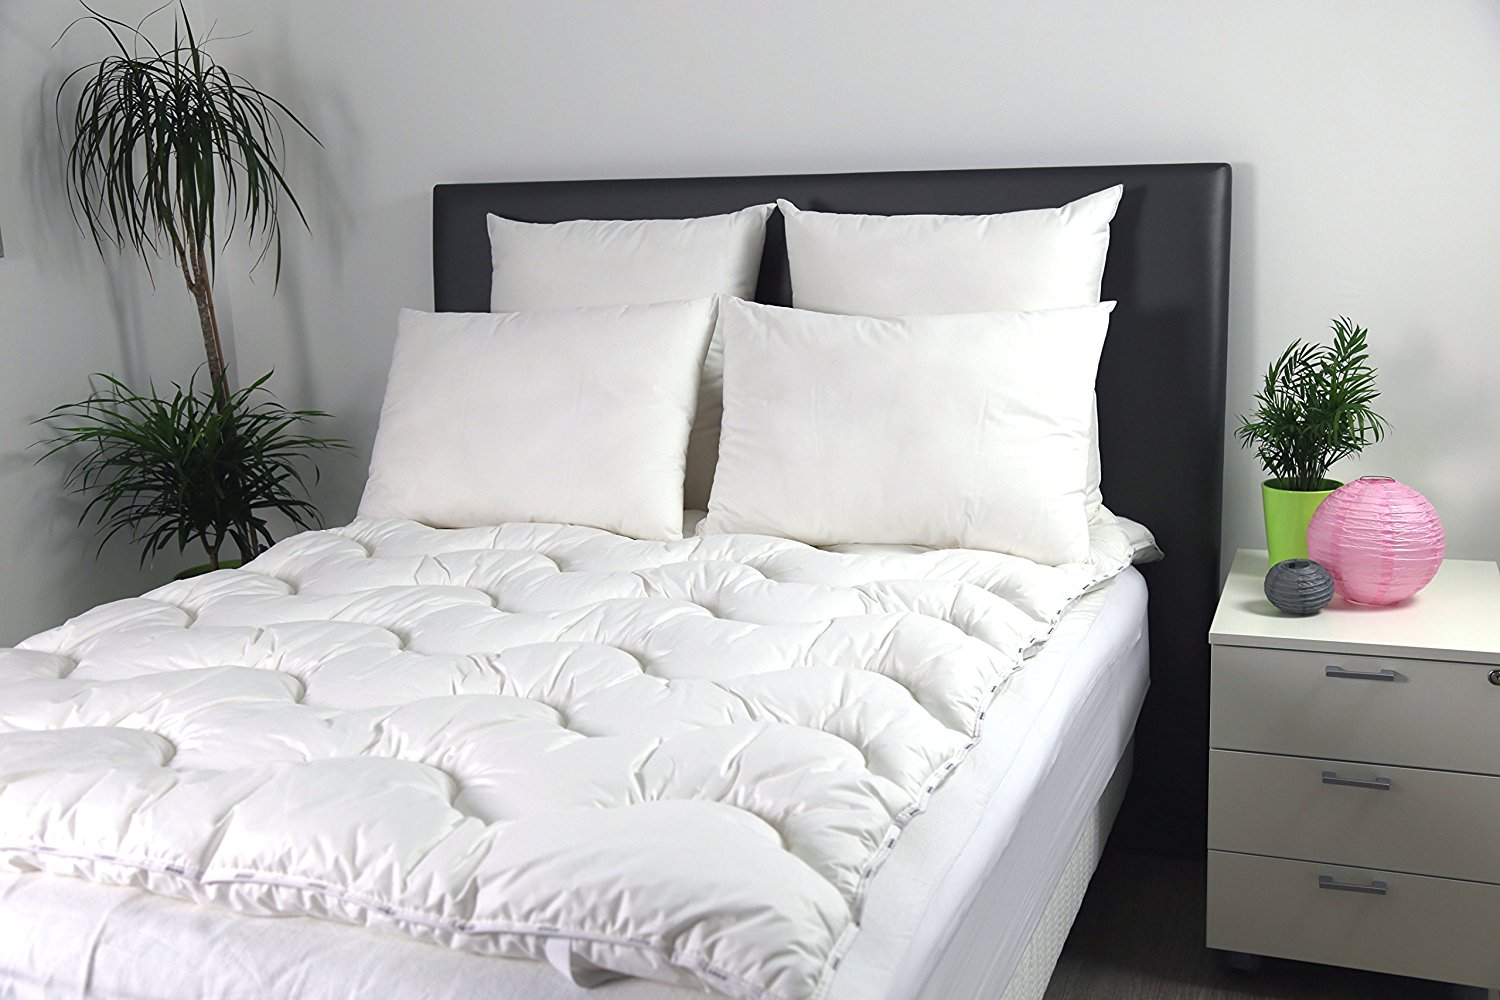 surmatelas moelleux trendy sur matelas mousse with surmatelas moelleux stunning surmatelas. Black Bedroom Furniture Sets. Home Design Ideas